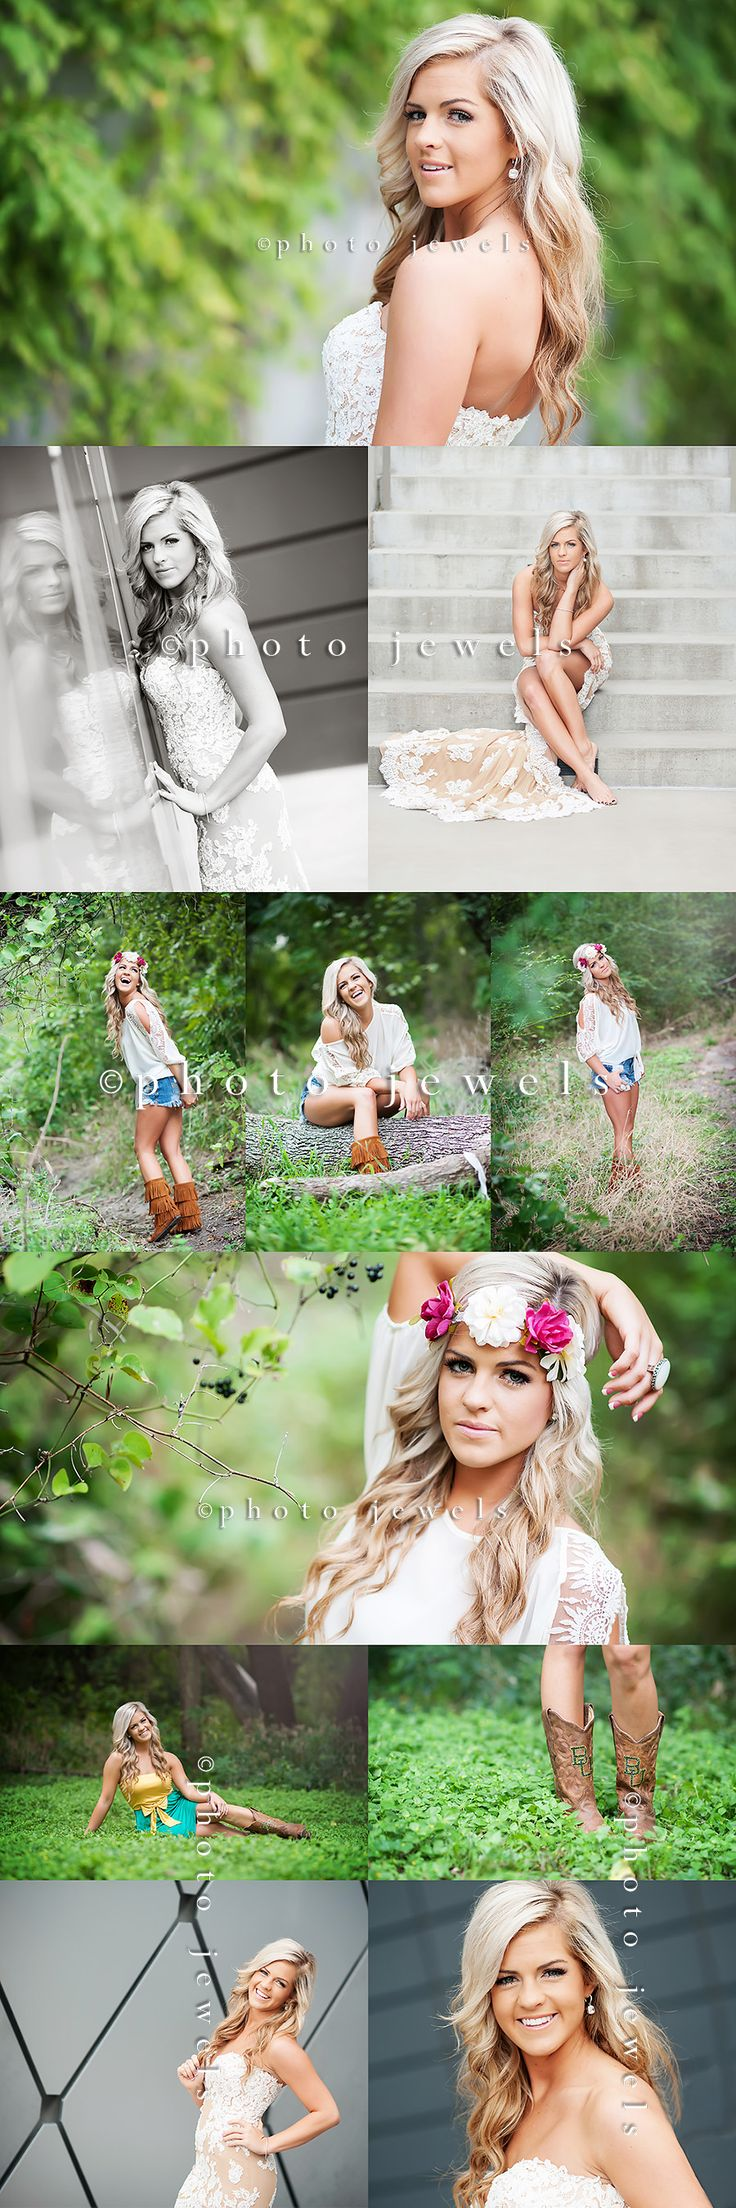 senior girl, senior pictures, HS senior, senior girl photos, senior girl photo shoot, Photo Jewels Photography, urban senior